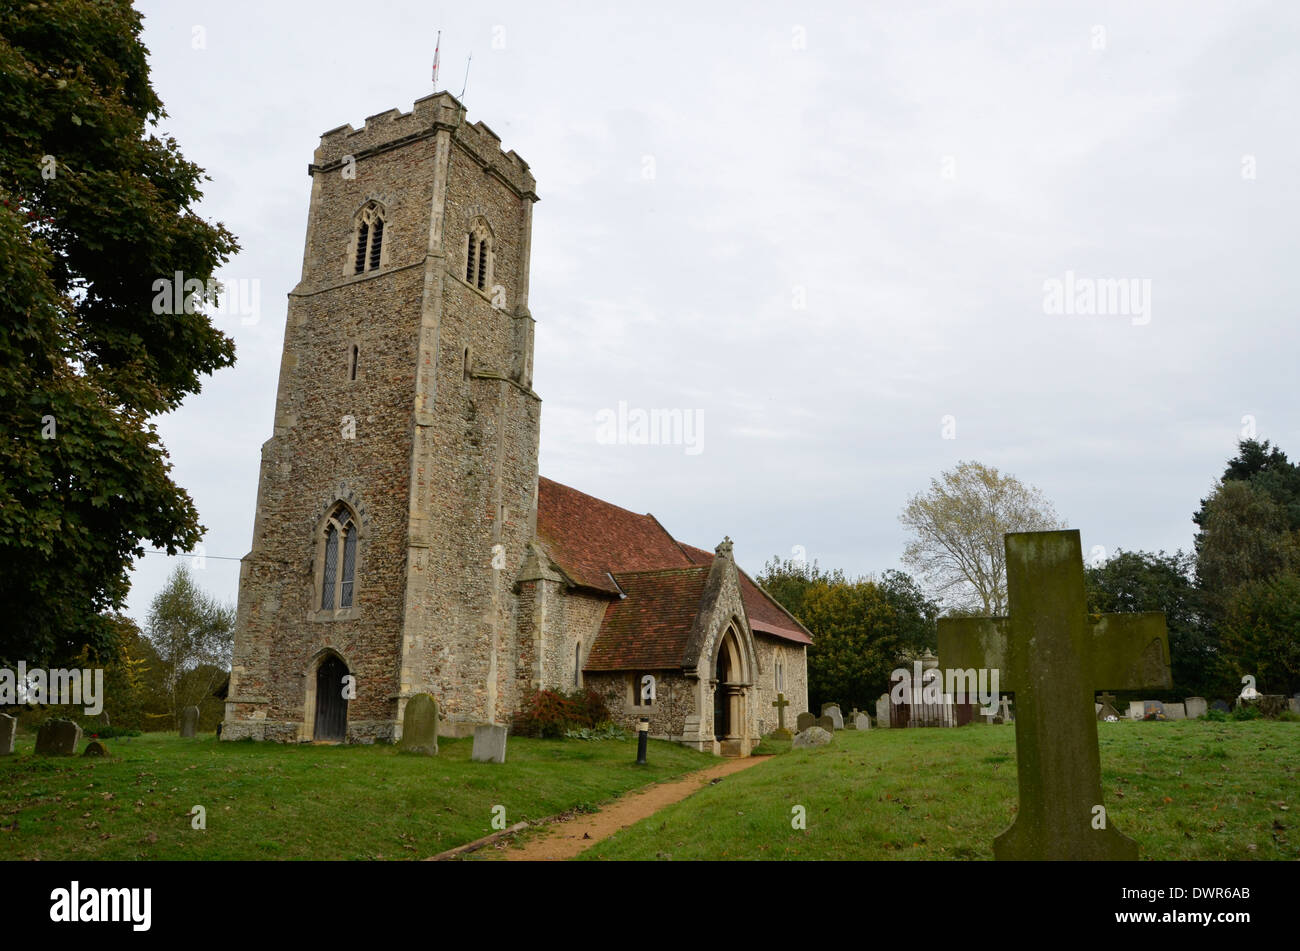 Shottisham Church, Shottisham, Suffolk. Stock Photo